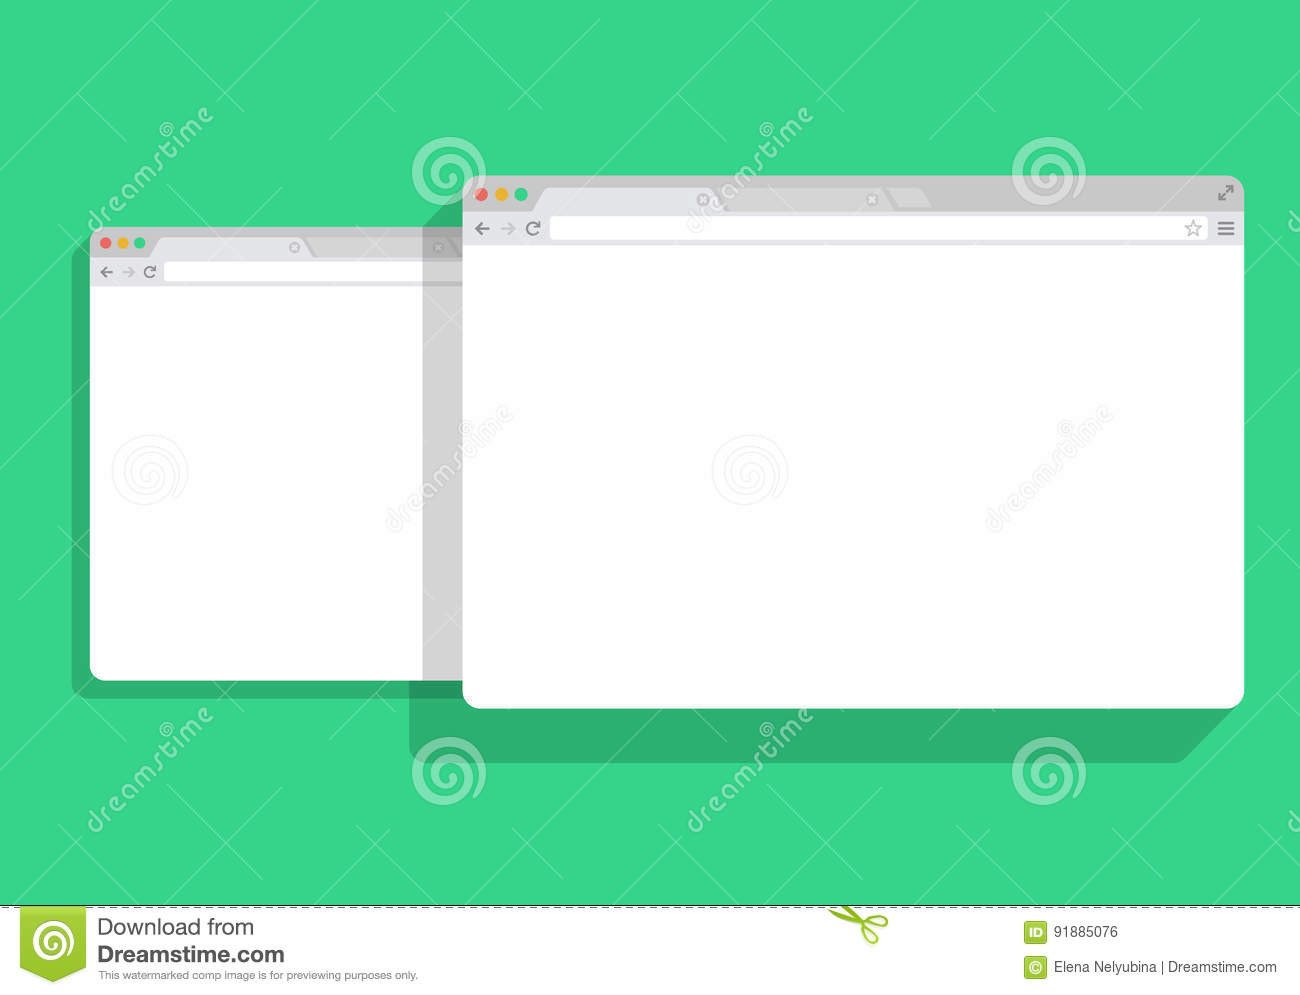 Web simple set of Browser window white, green background, mock-up vector illustration